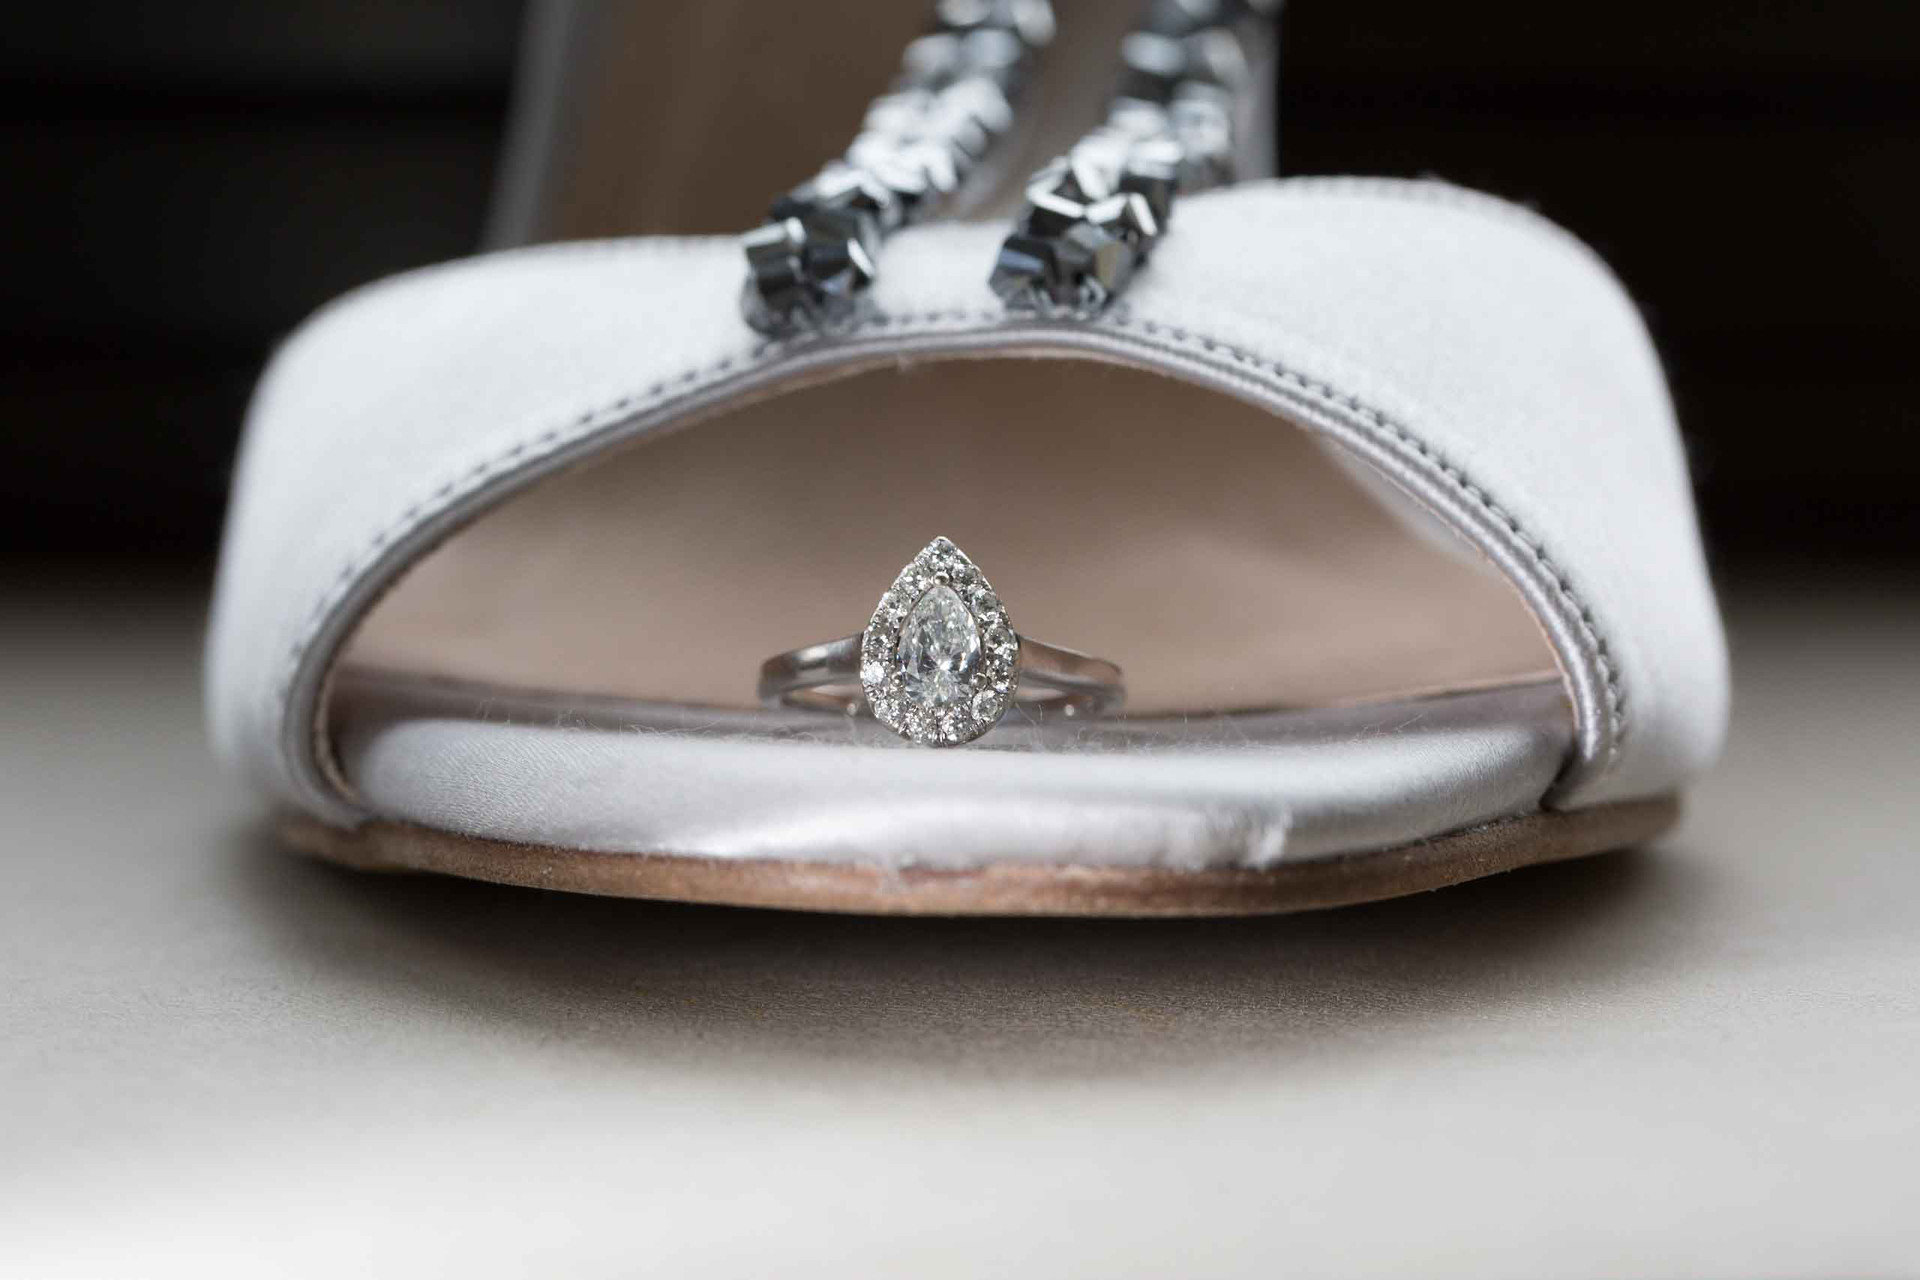 Wedding Ring and Shoes